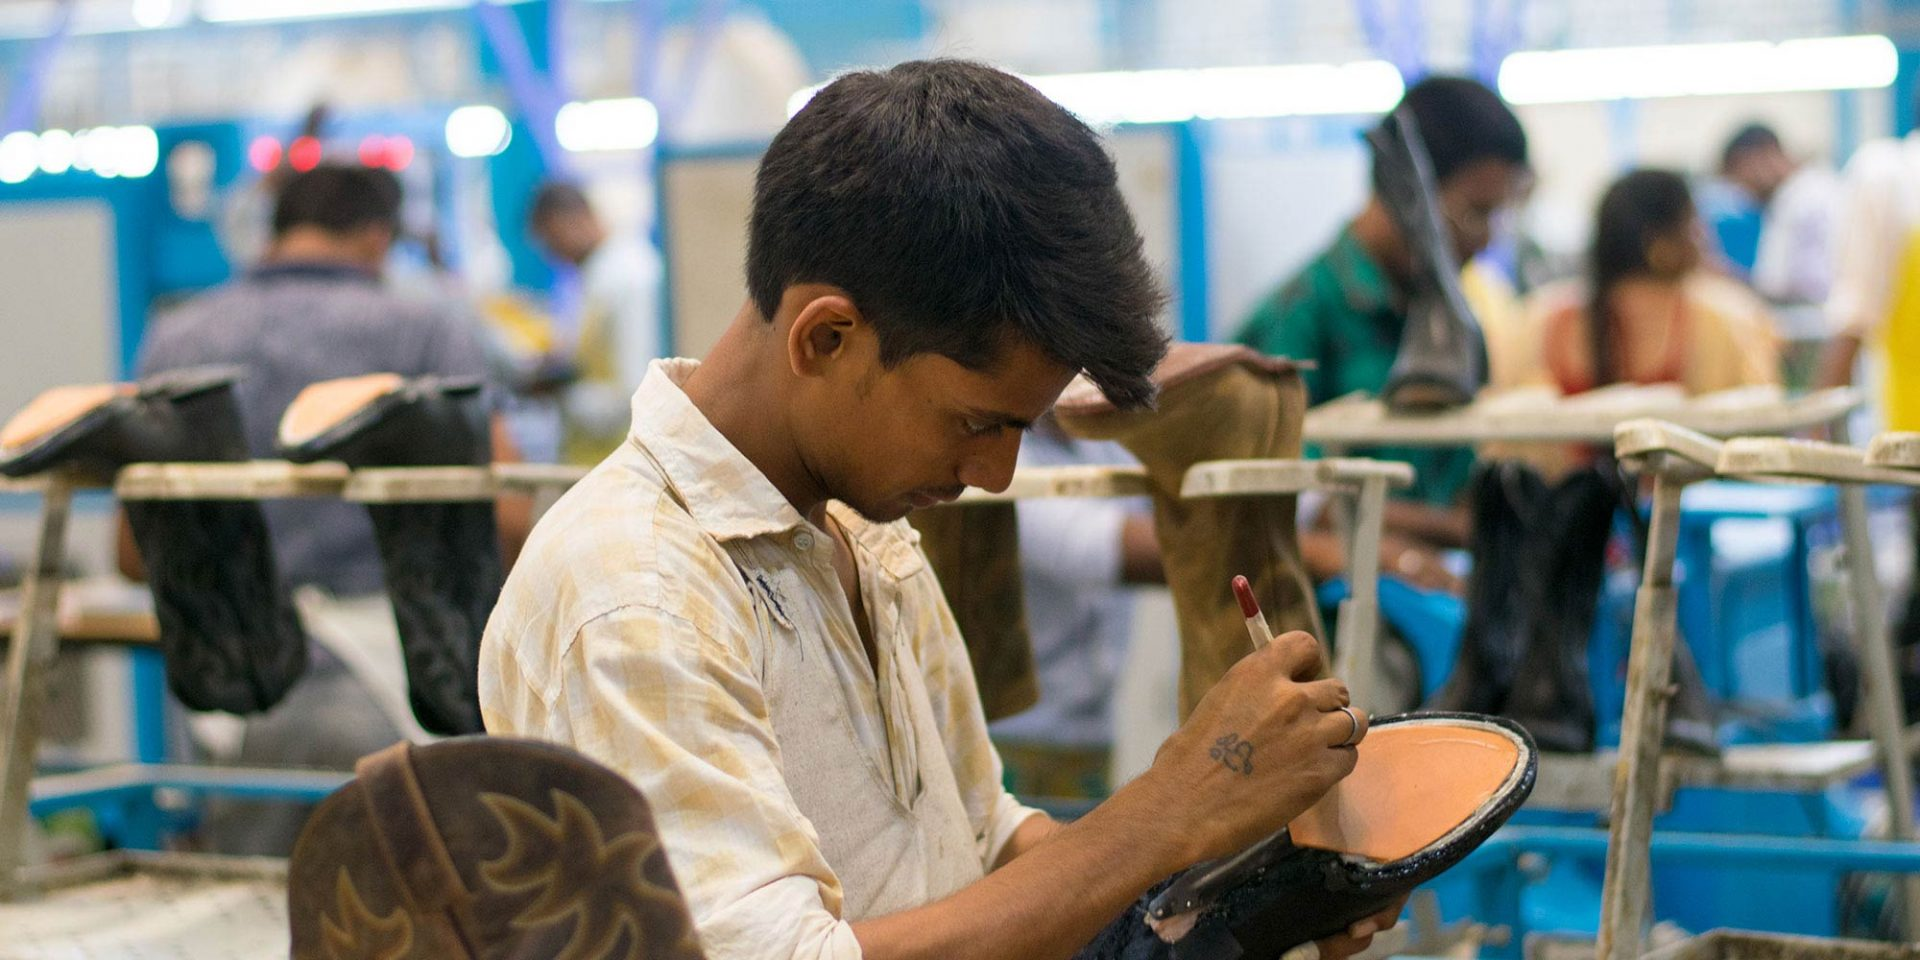 A man works on creating a shoe